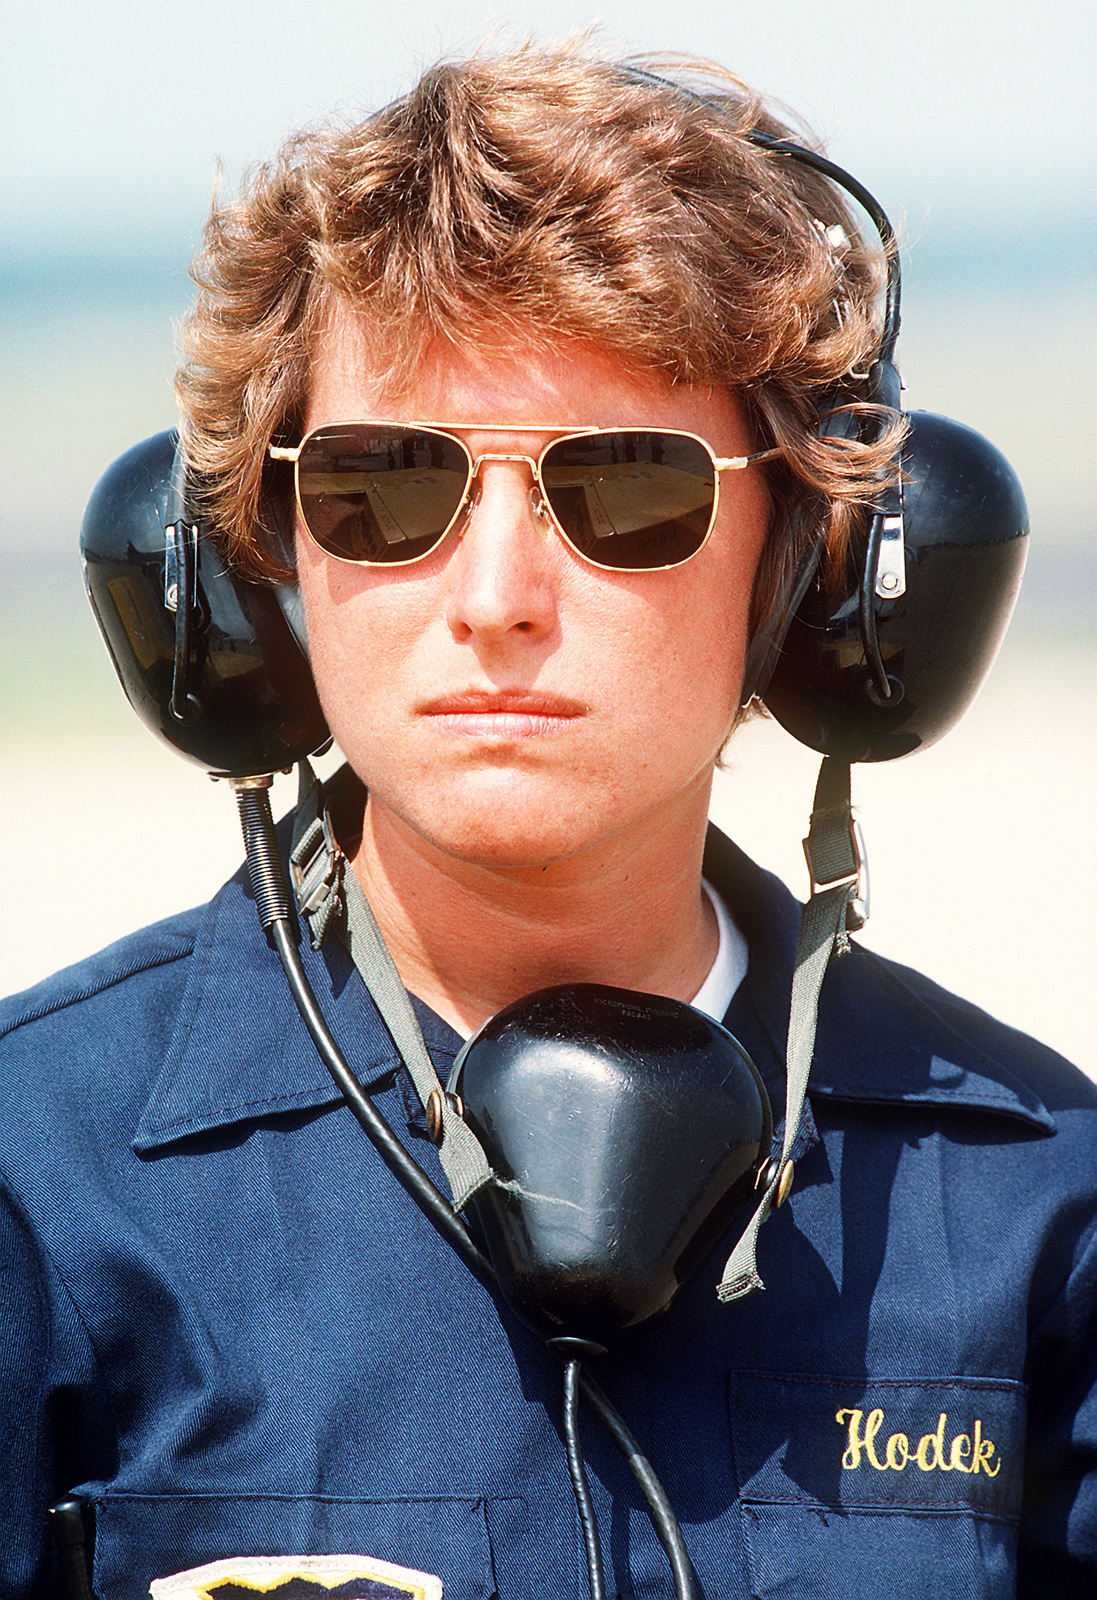 A female ground crew member provides ground support for the Blue Angels, the Navy's flight demonstration team